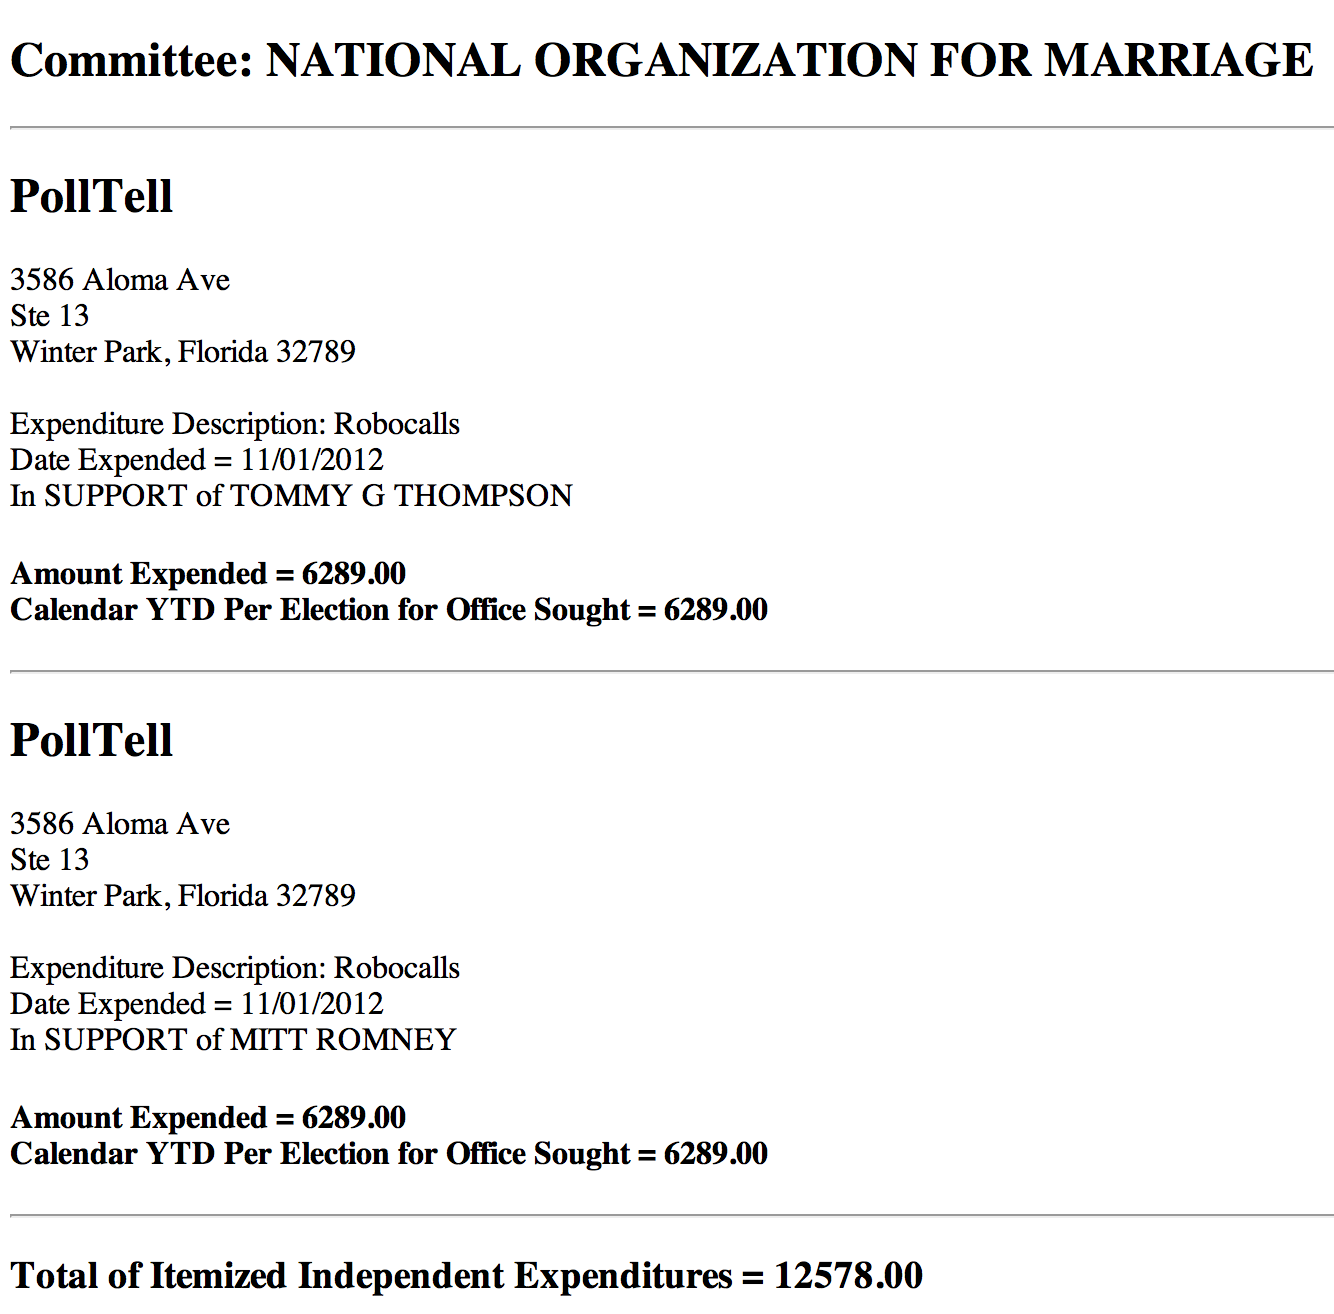 NOM; National Organization for Marriage